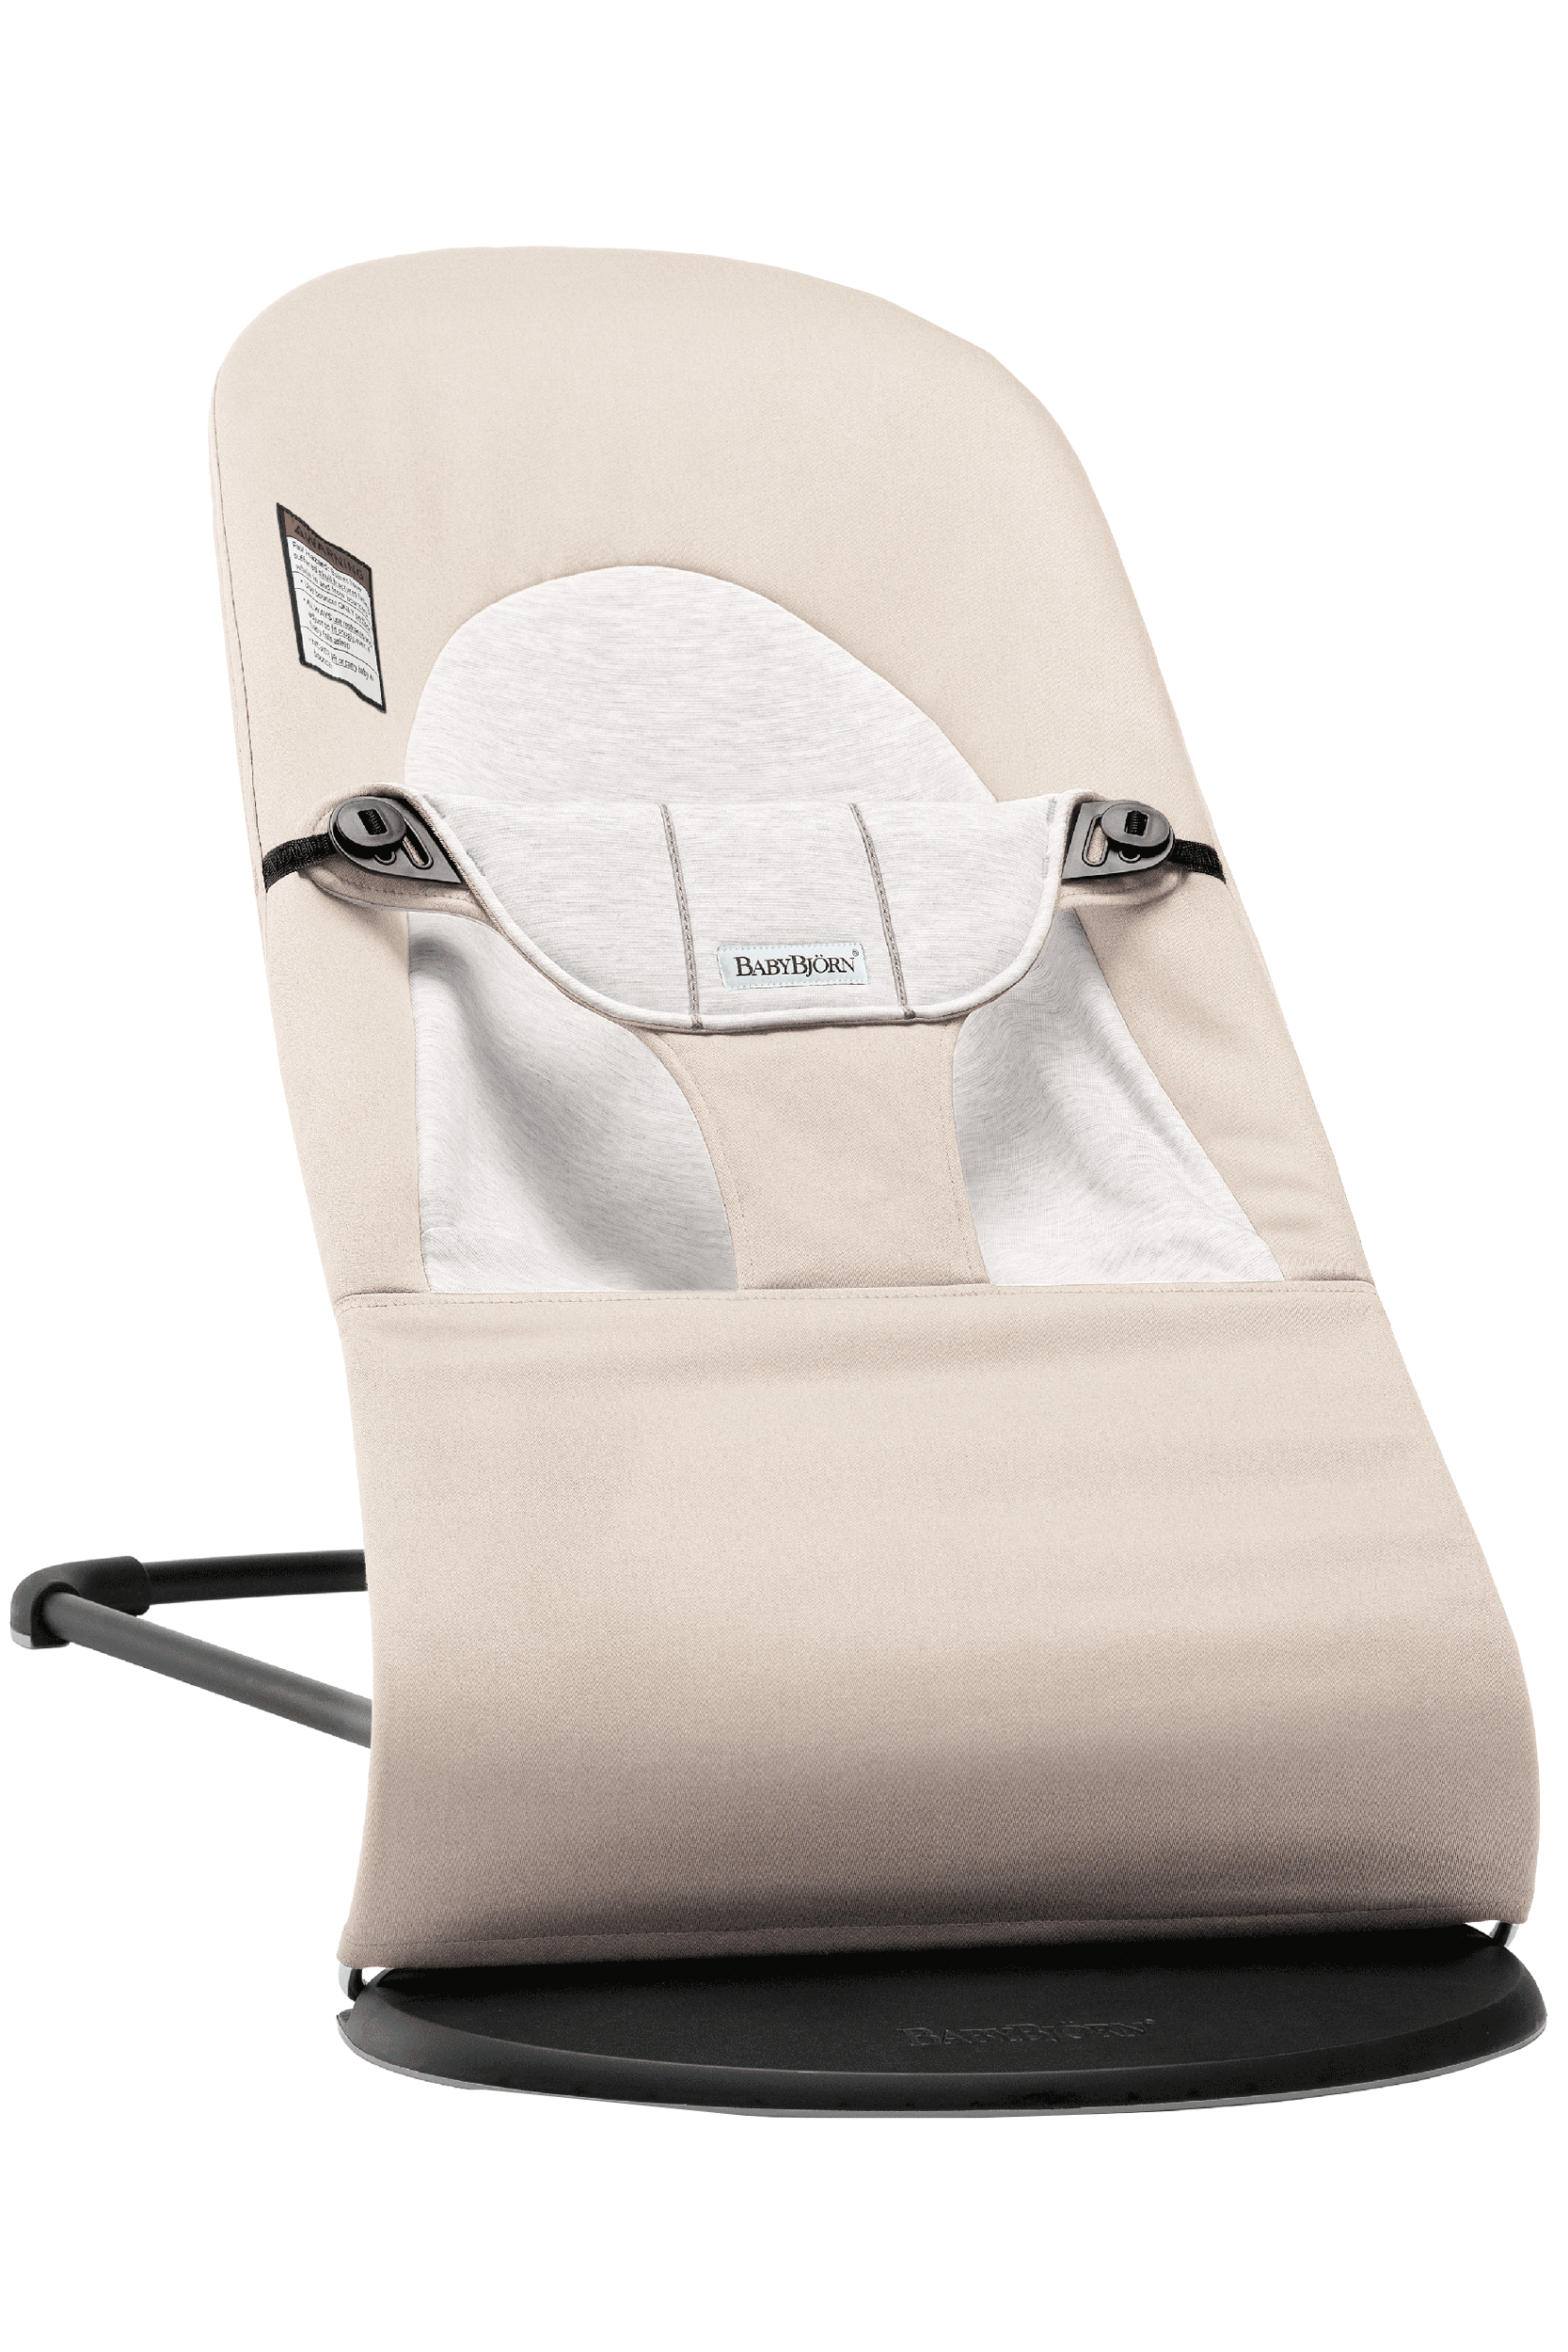 Peachy Balance Soft An Ergonomic Baby Bouncer Babybjorn Pabps2019 Chair Design Images Pabps2019Com